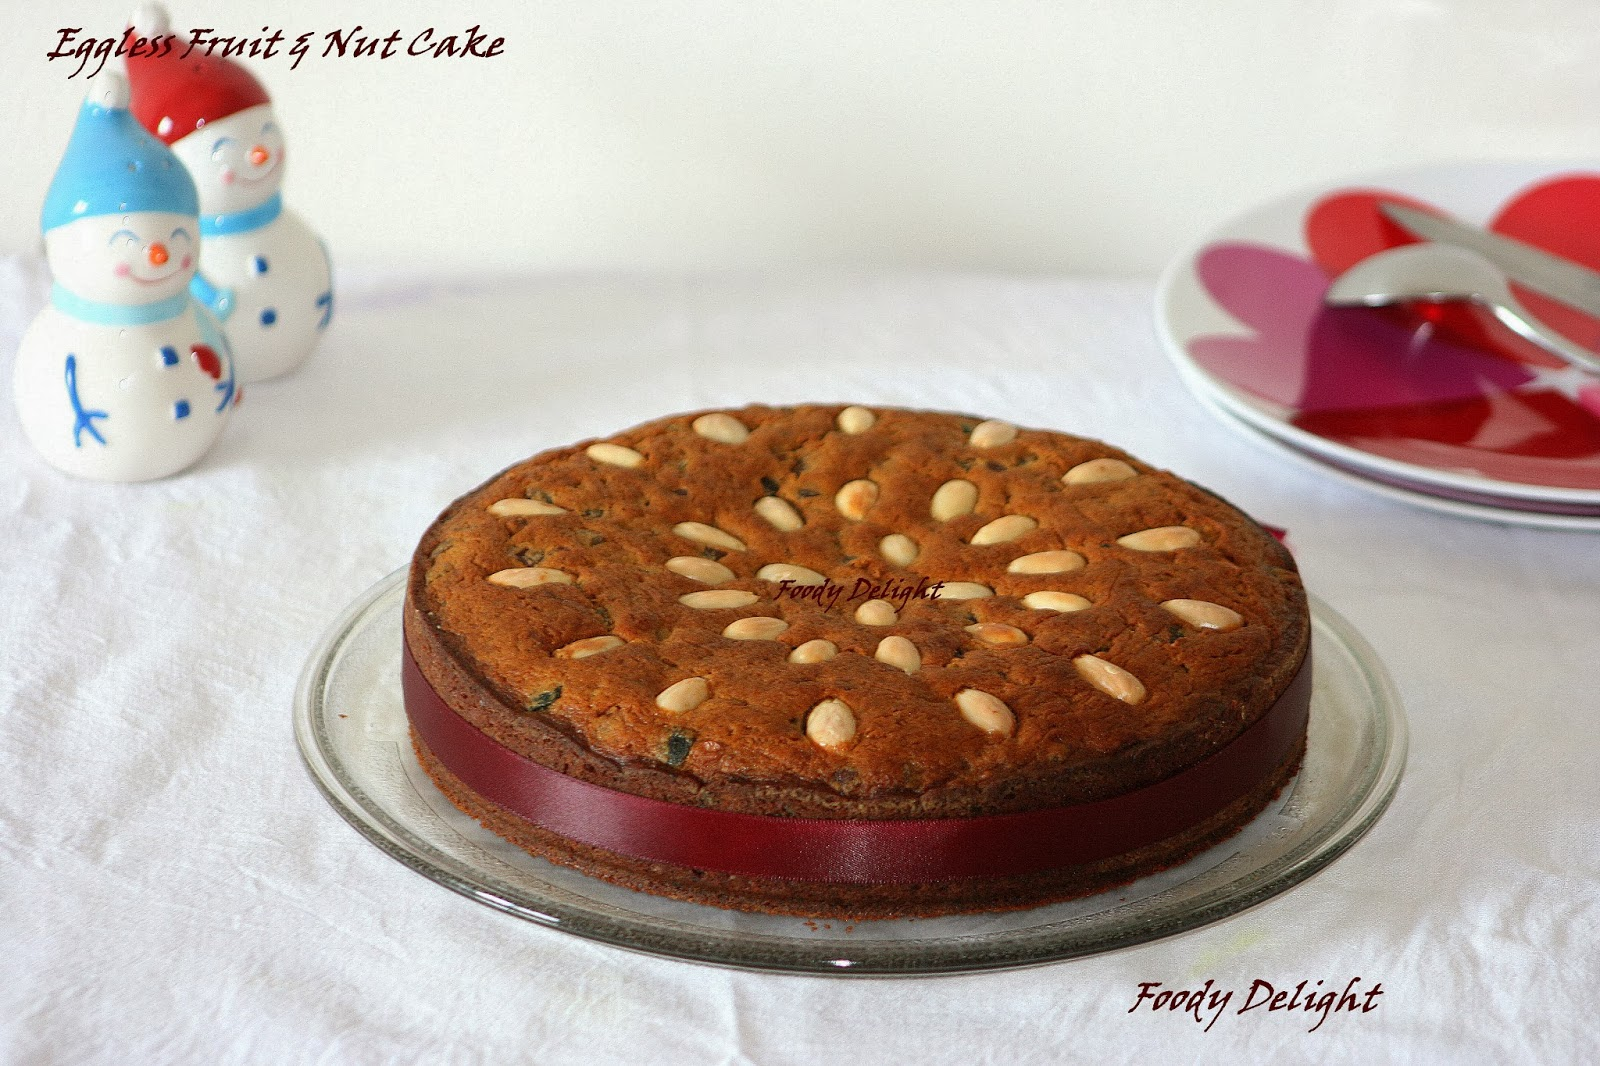 Christmas cake decoration with fruit and nuts - Eggless Fruit And Nut Cake Christmas Cake